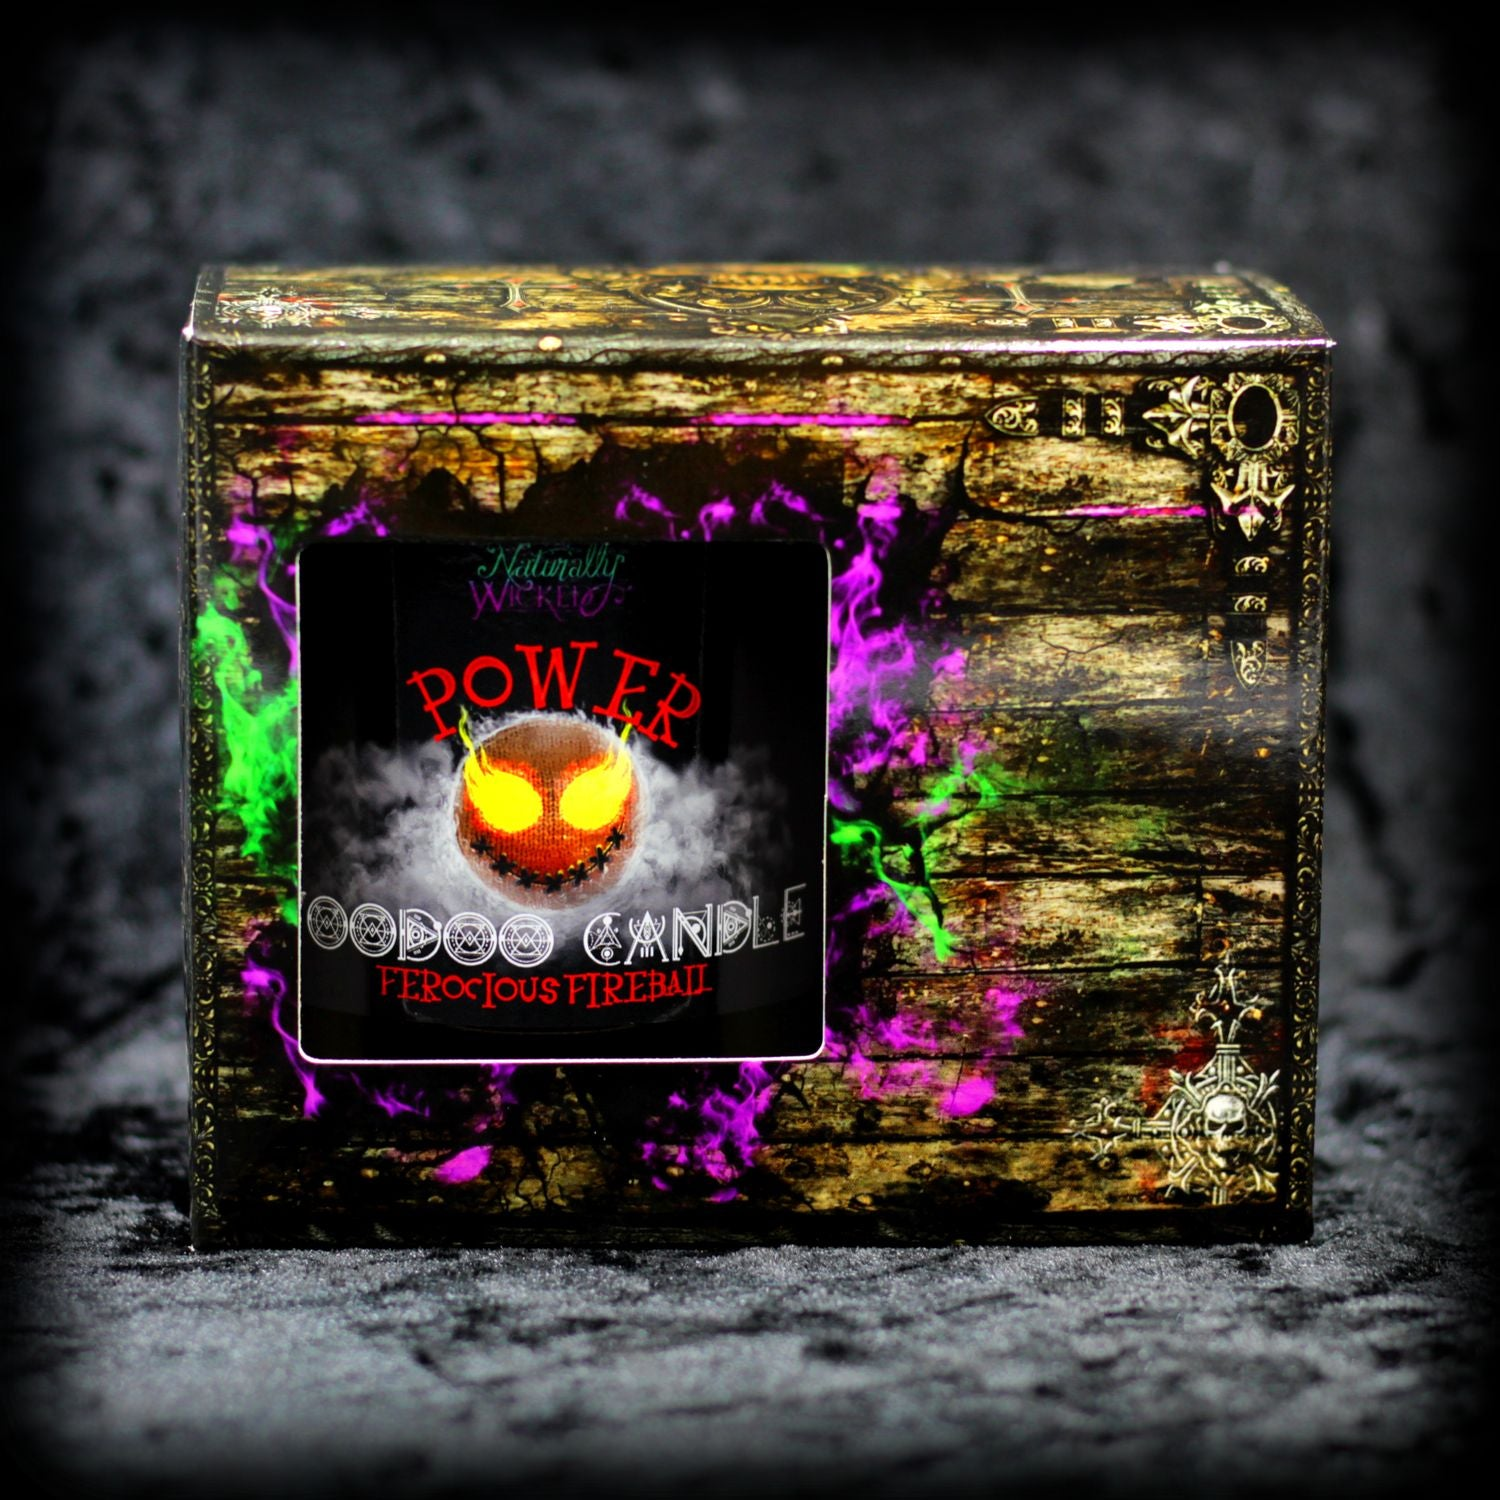 Naturally Wicked Bright Red Voodoo Power Candle In Cursed Wooden Look Box